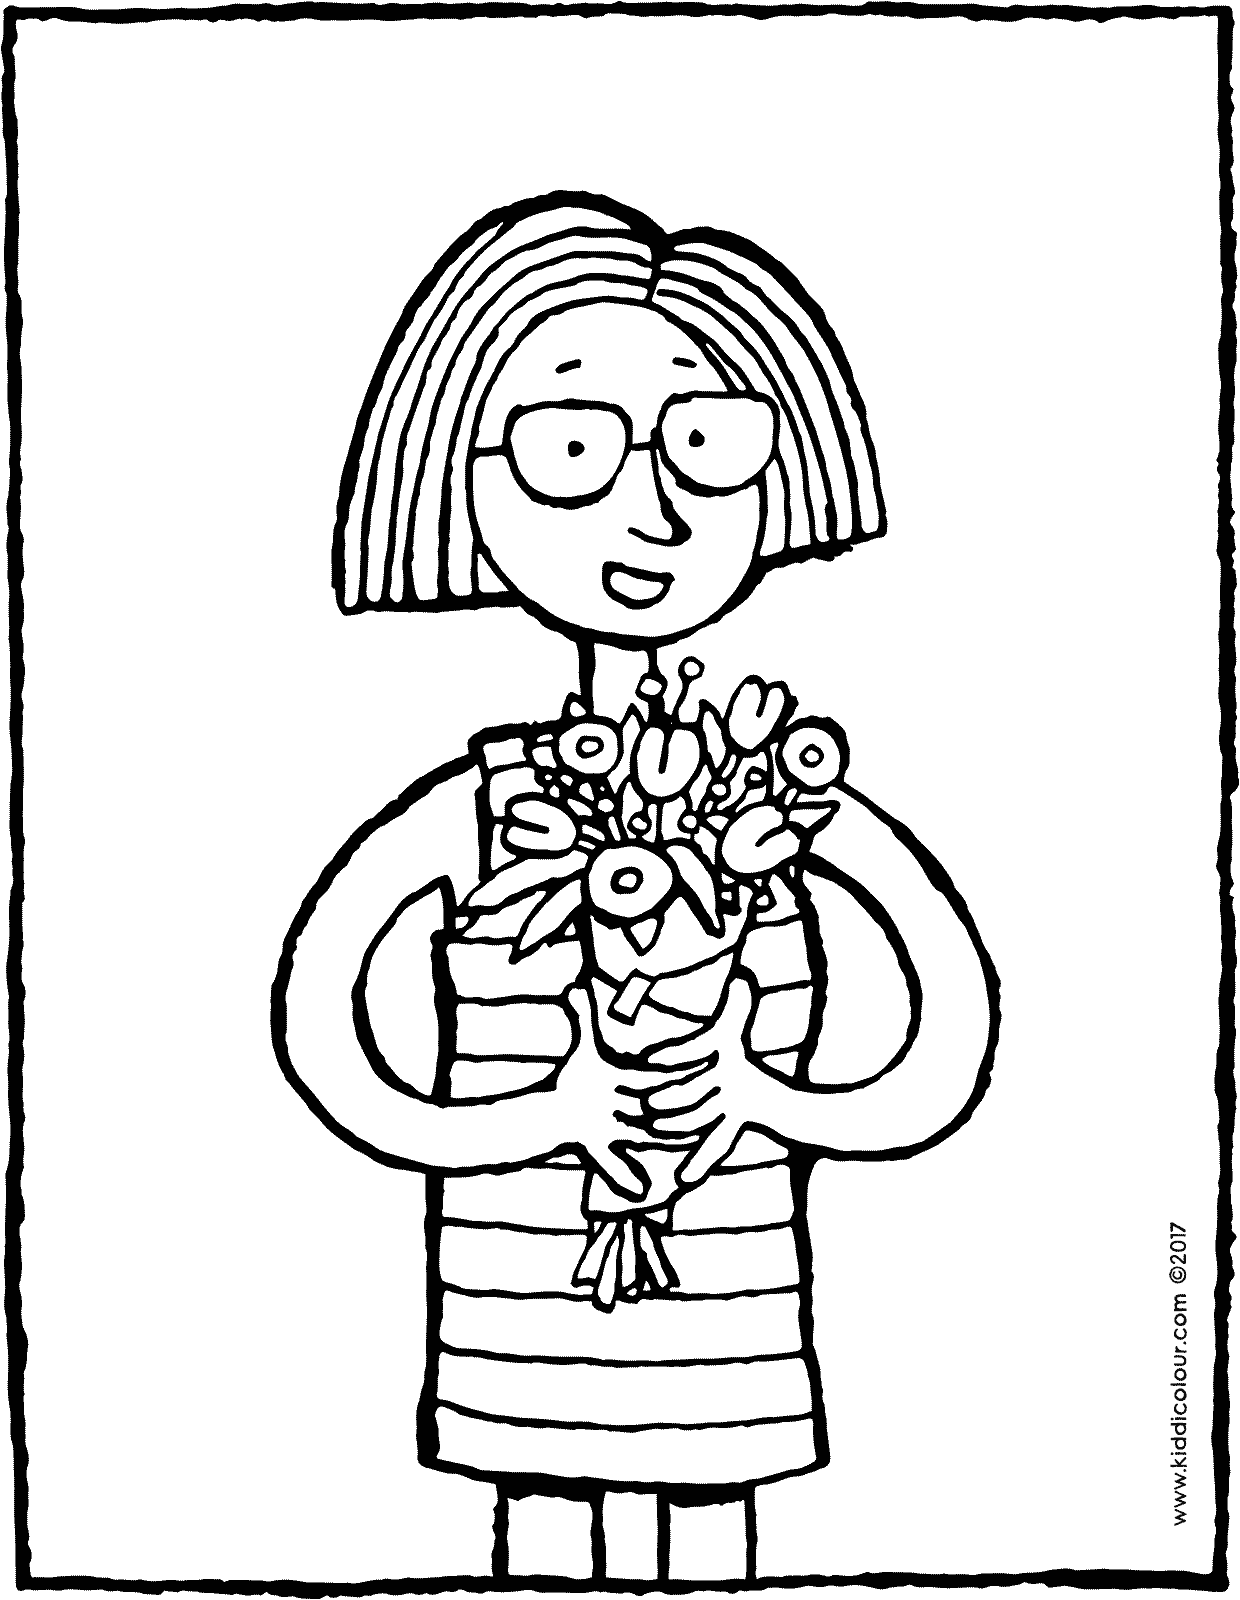 hip hip hurrah for mothers colouring page drawing picture 01V